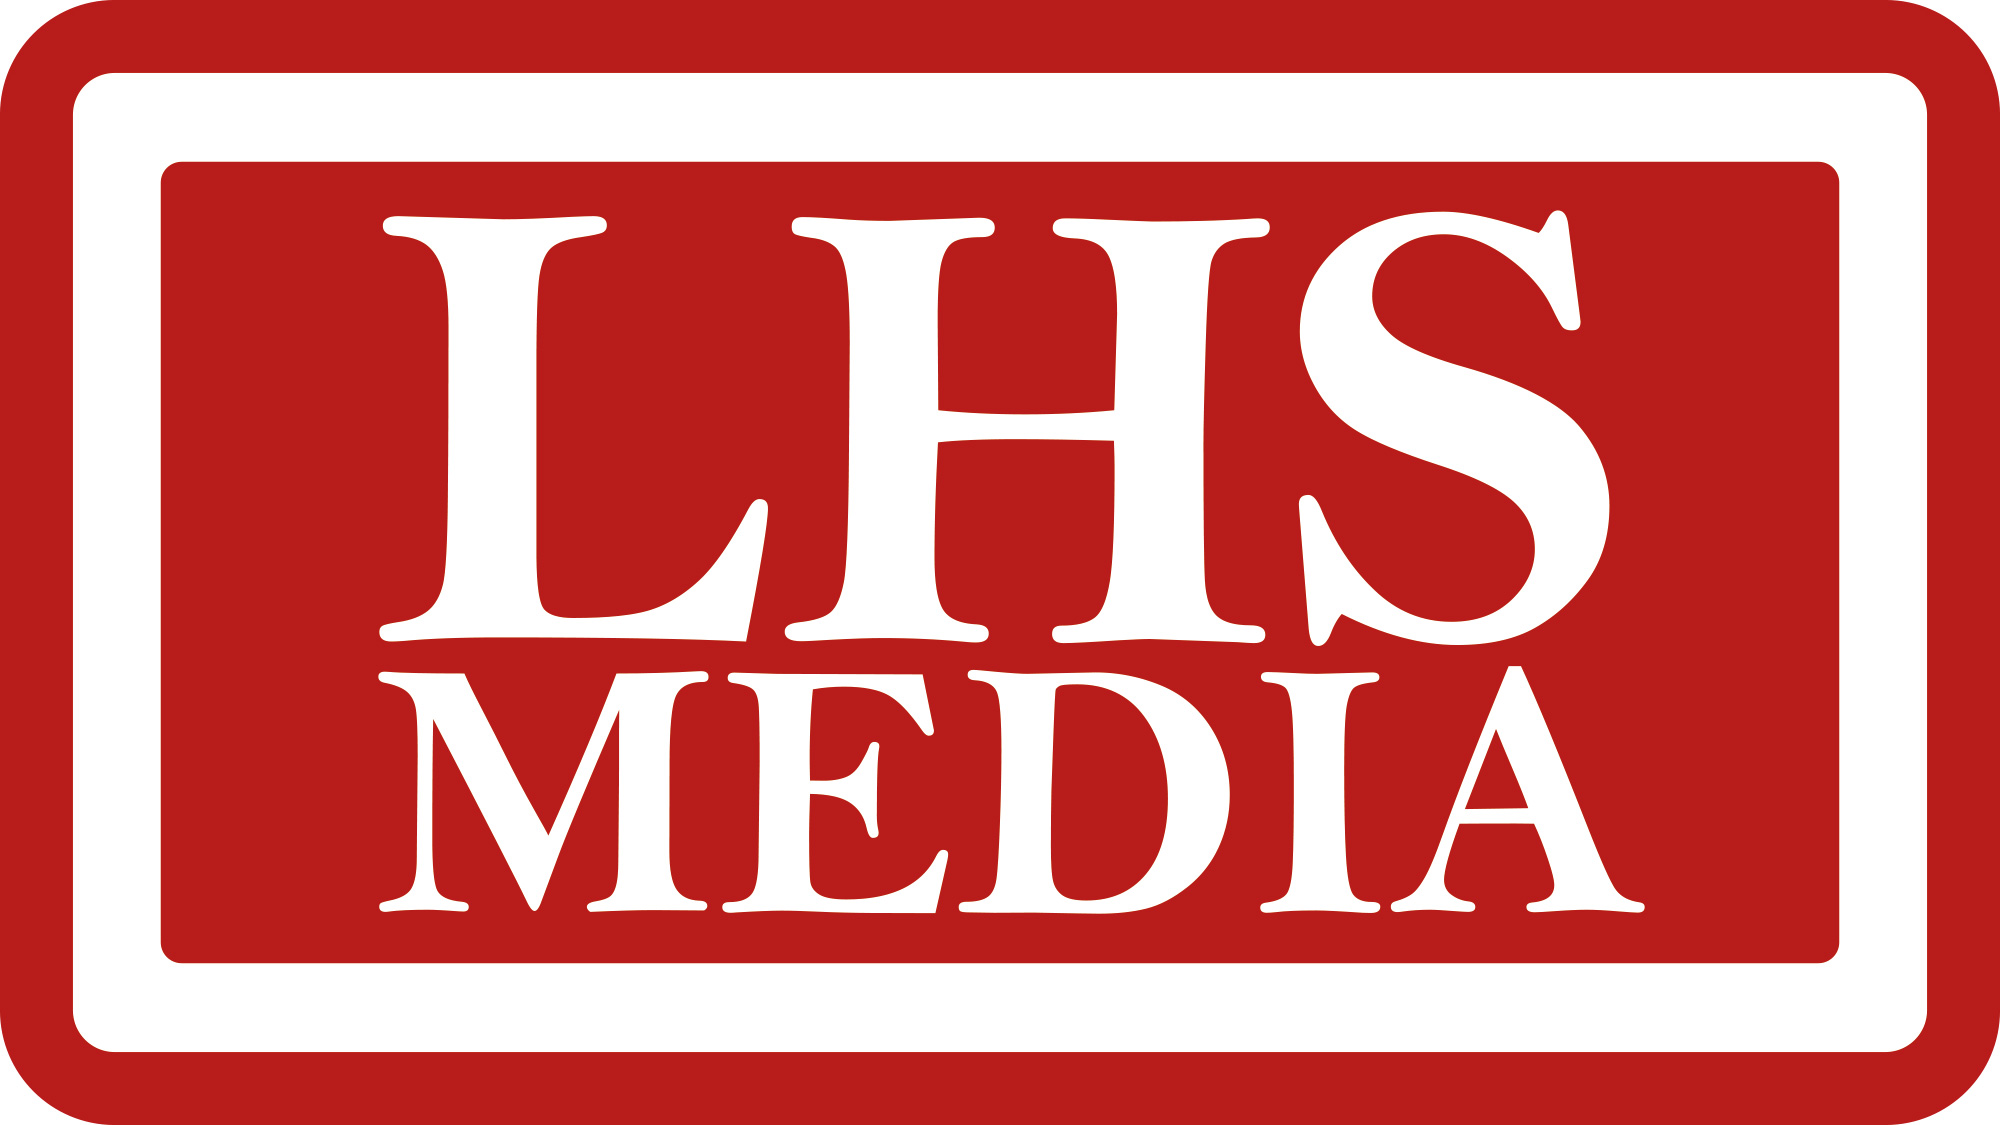 LHS-Media Oy - logo